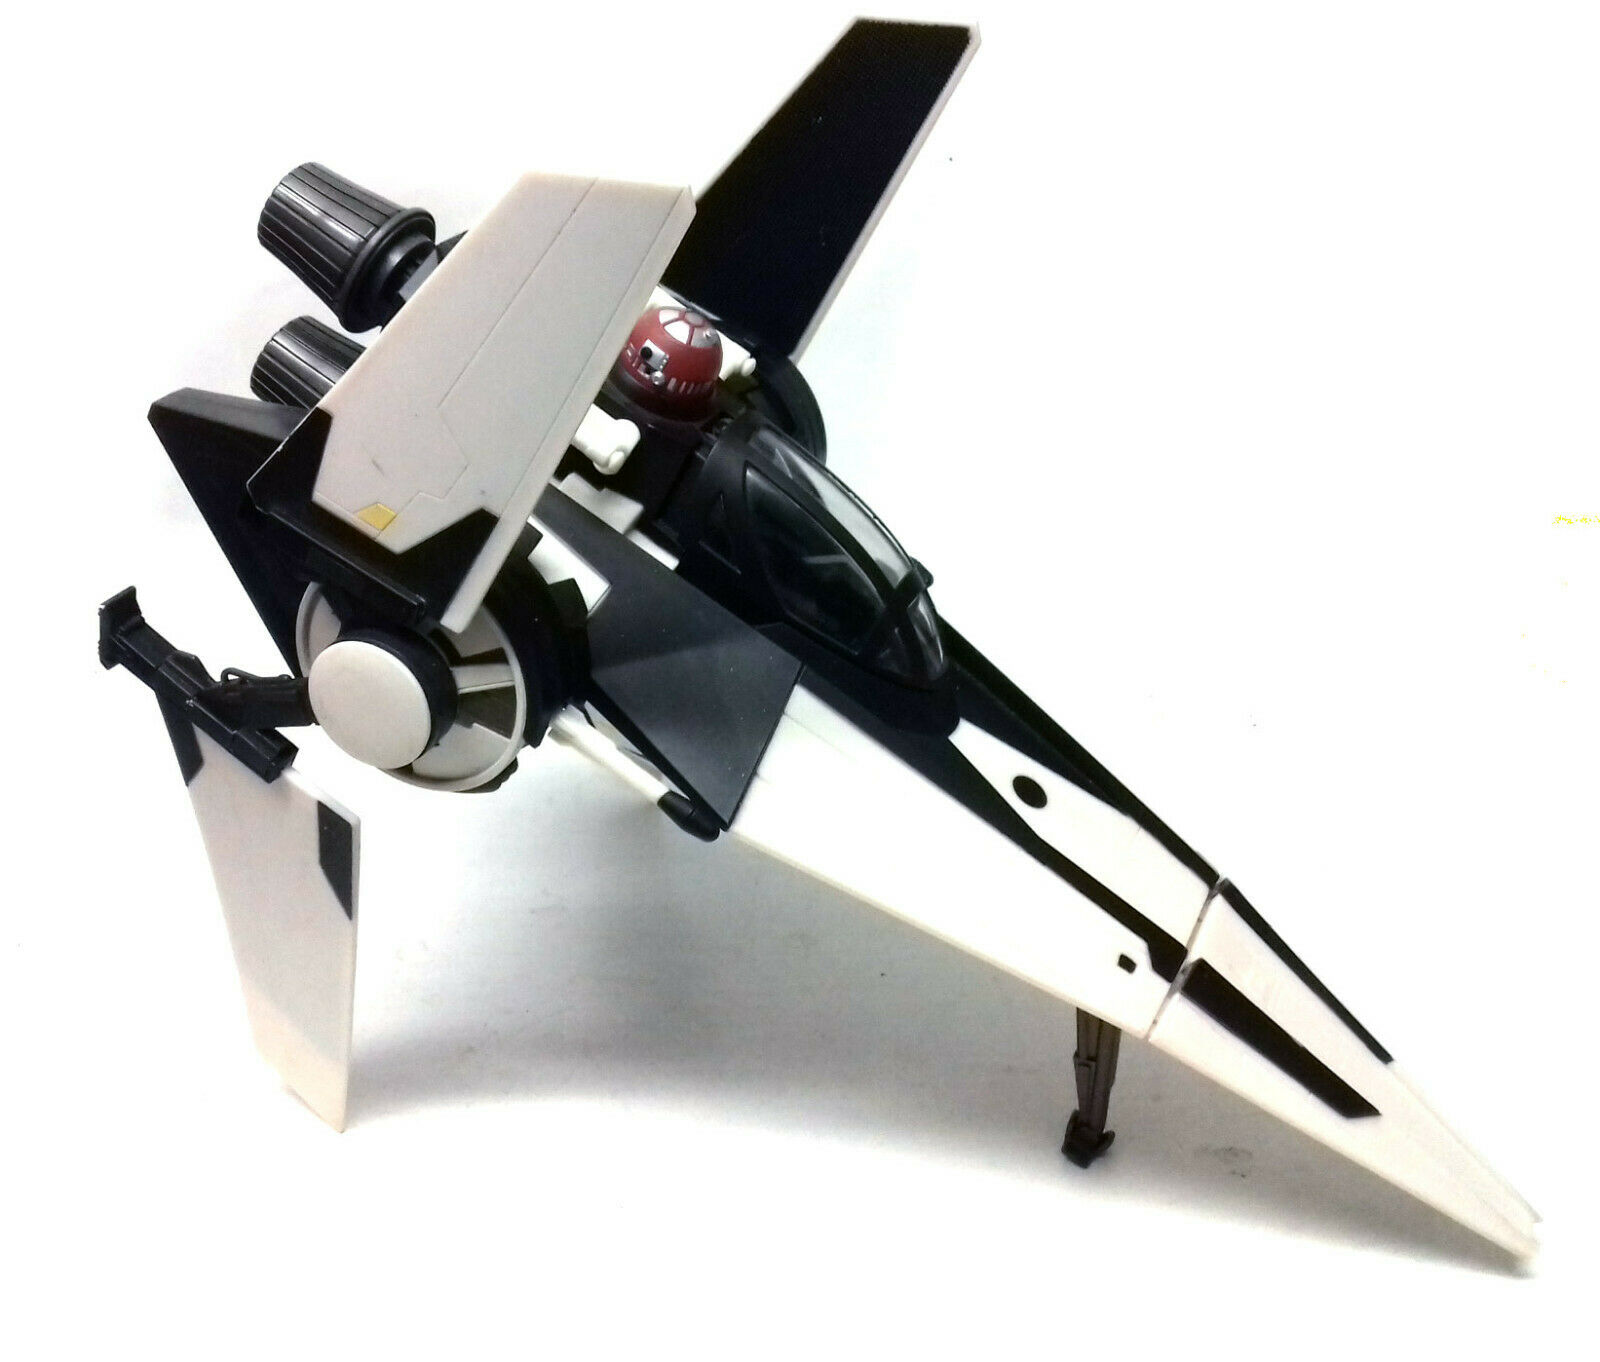 Star Wars V WING FIGHTER ship vehicle toy for 3.75  figures RARE schwarz MARKINGS